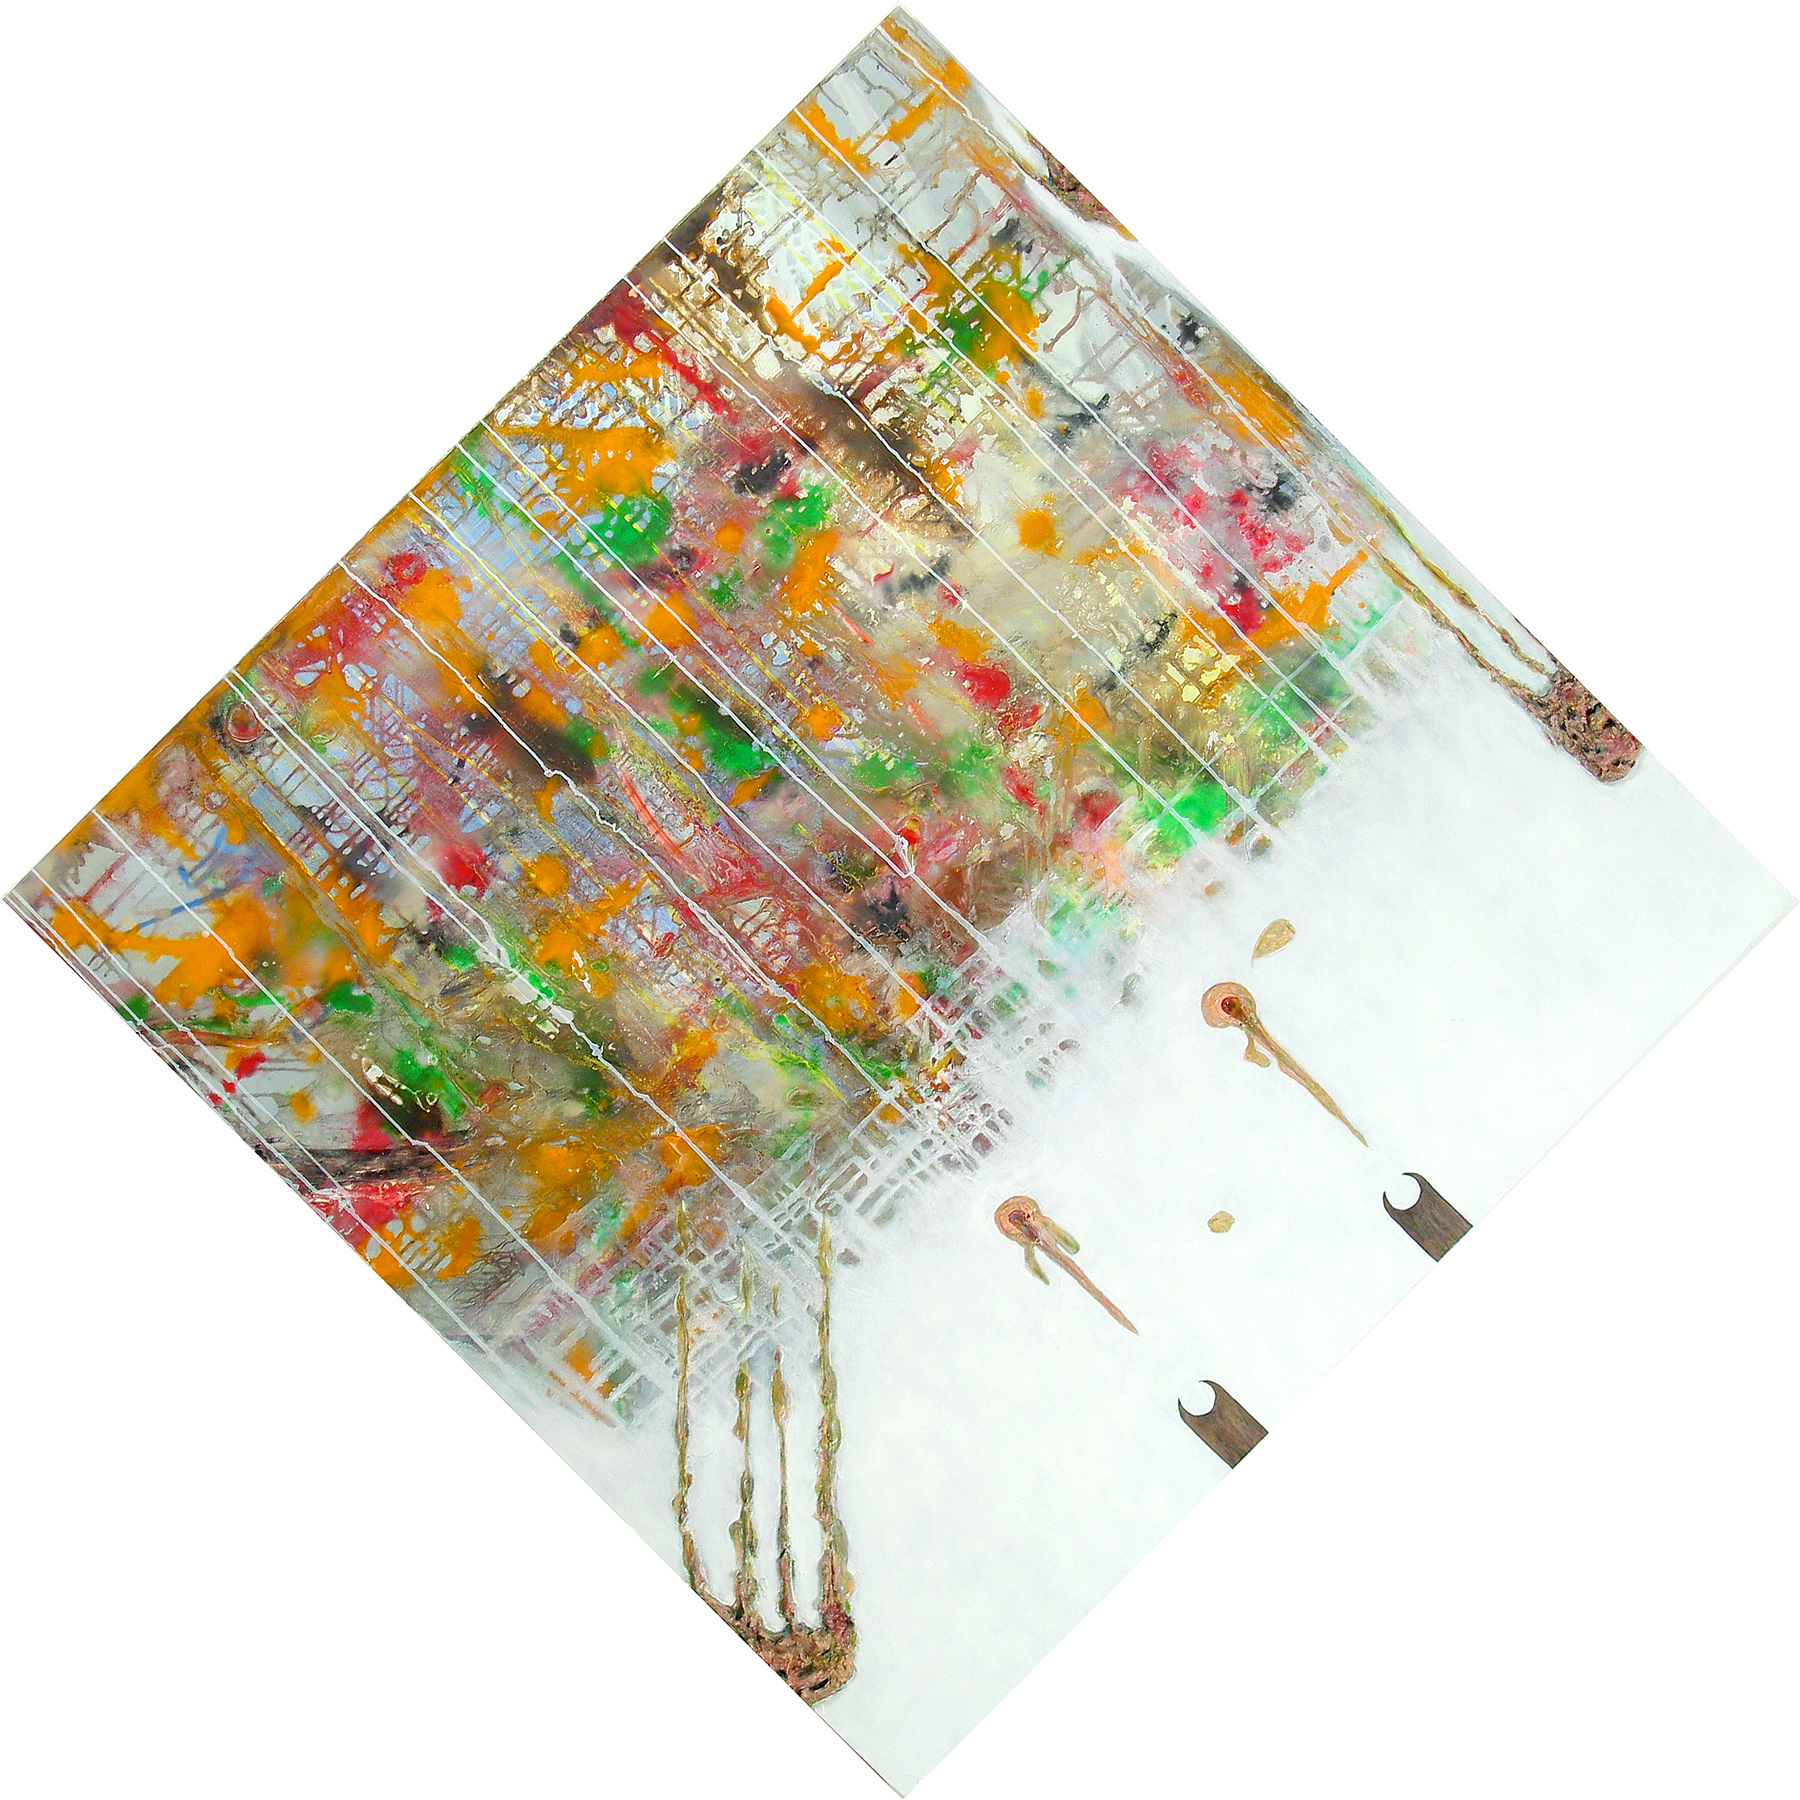 4 April , oil, acrylic and metallic paint on canvas, 68 in x 68 in overall, 2009.